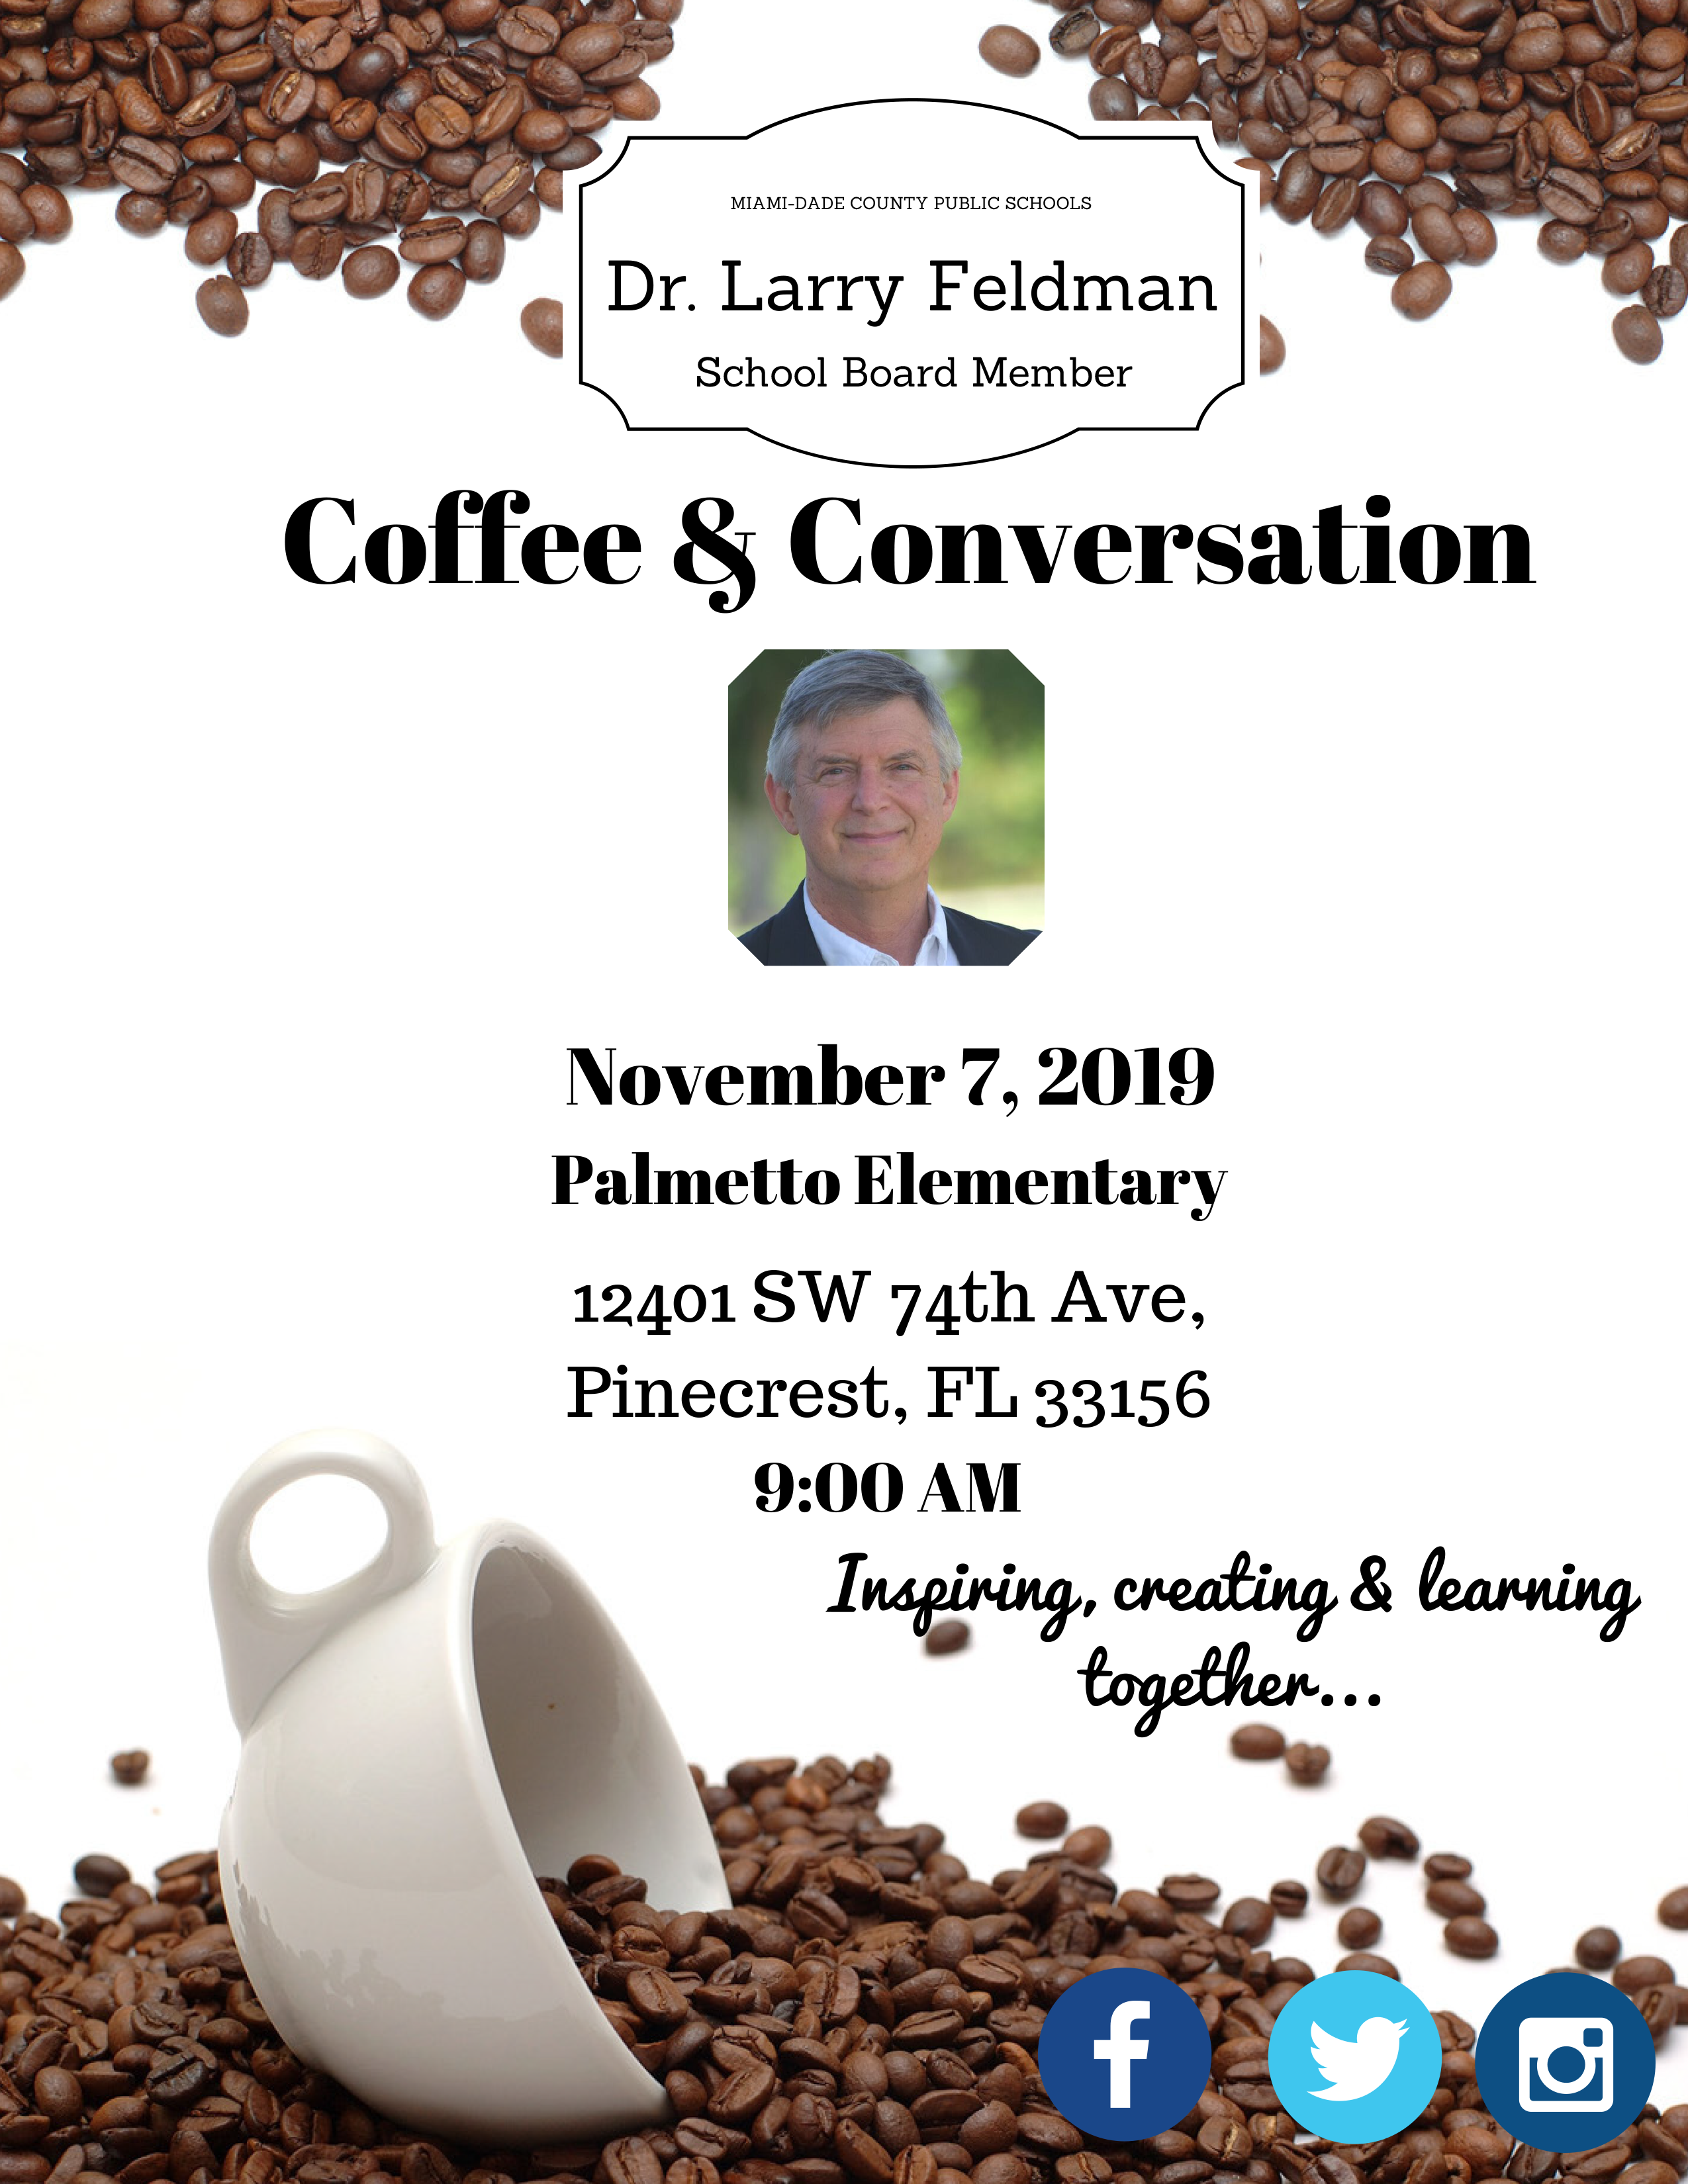 Coffee & Conversation with Dr. Larry Feldman @ Palmetto Elementary